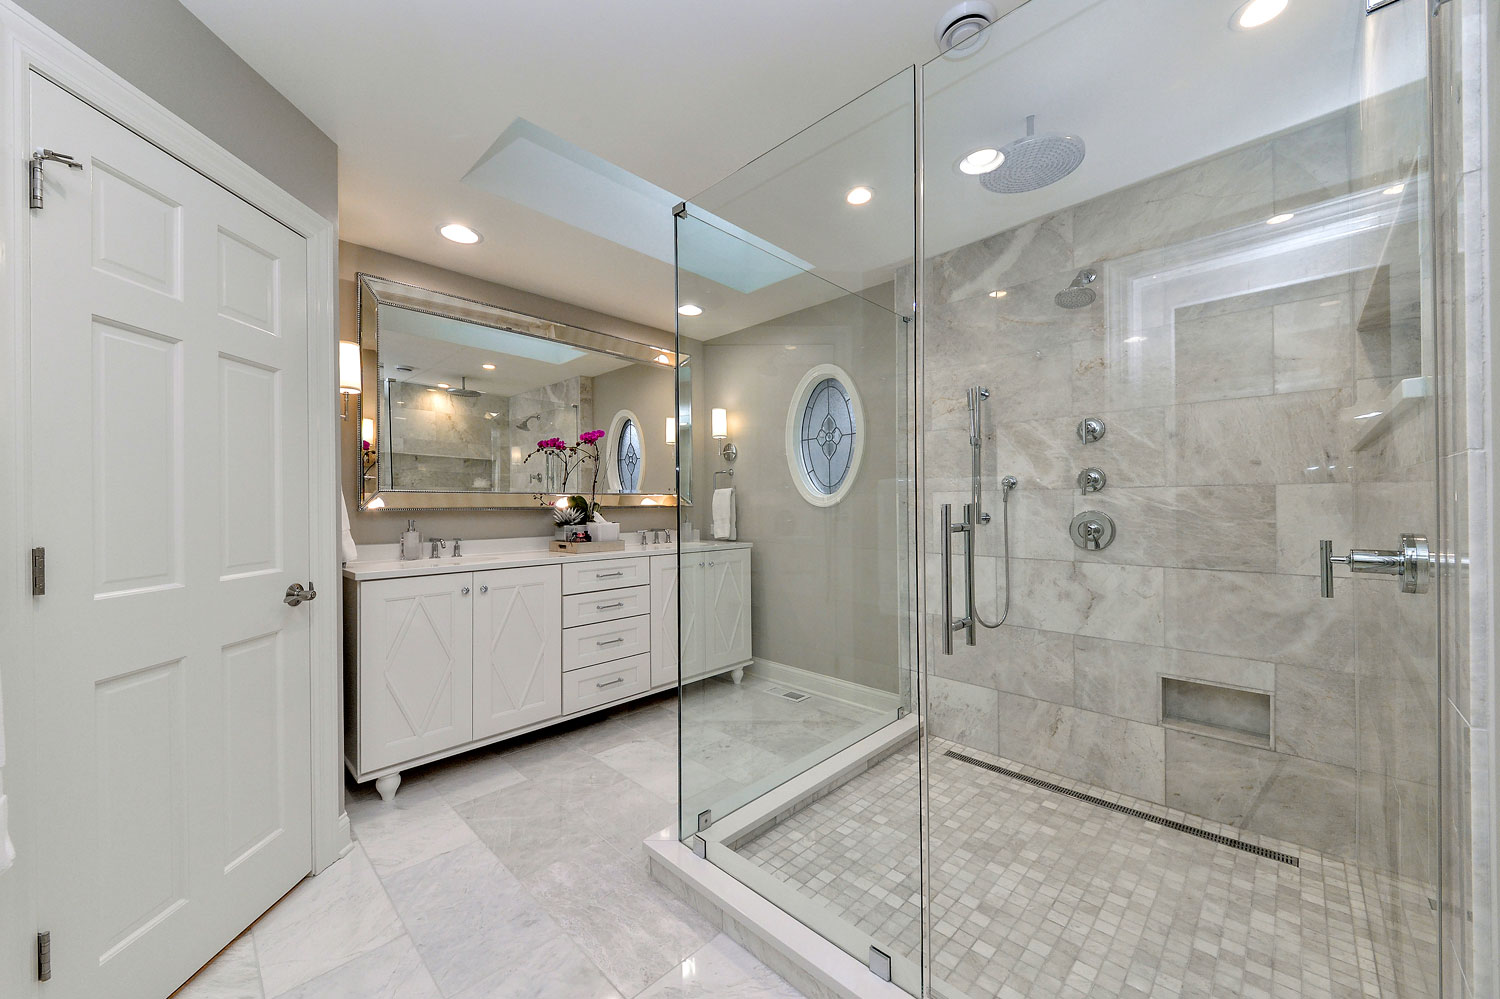 Bobby Lisa 39 S Master Bathroom Remodel Pictures Home Remodeling Contractors Sebring Design Build